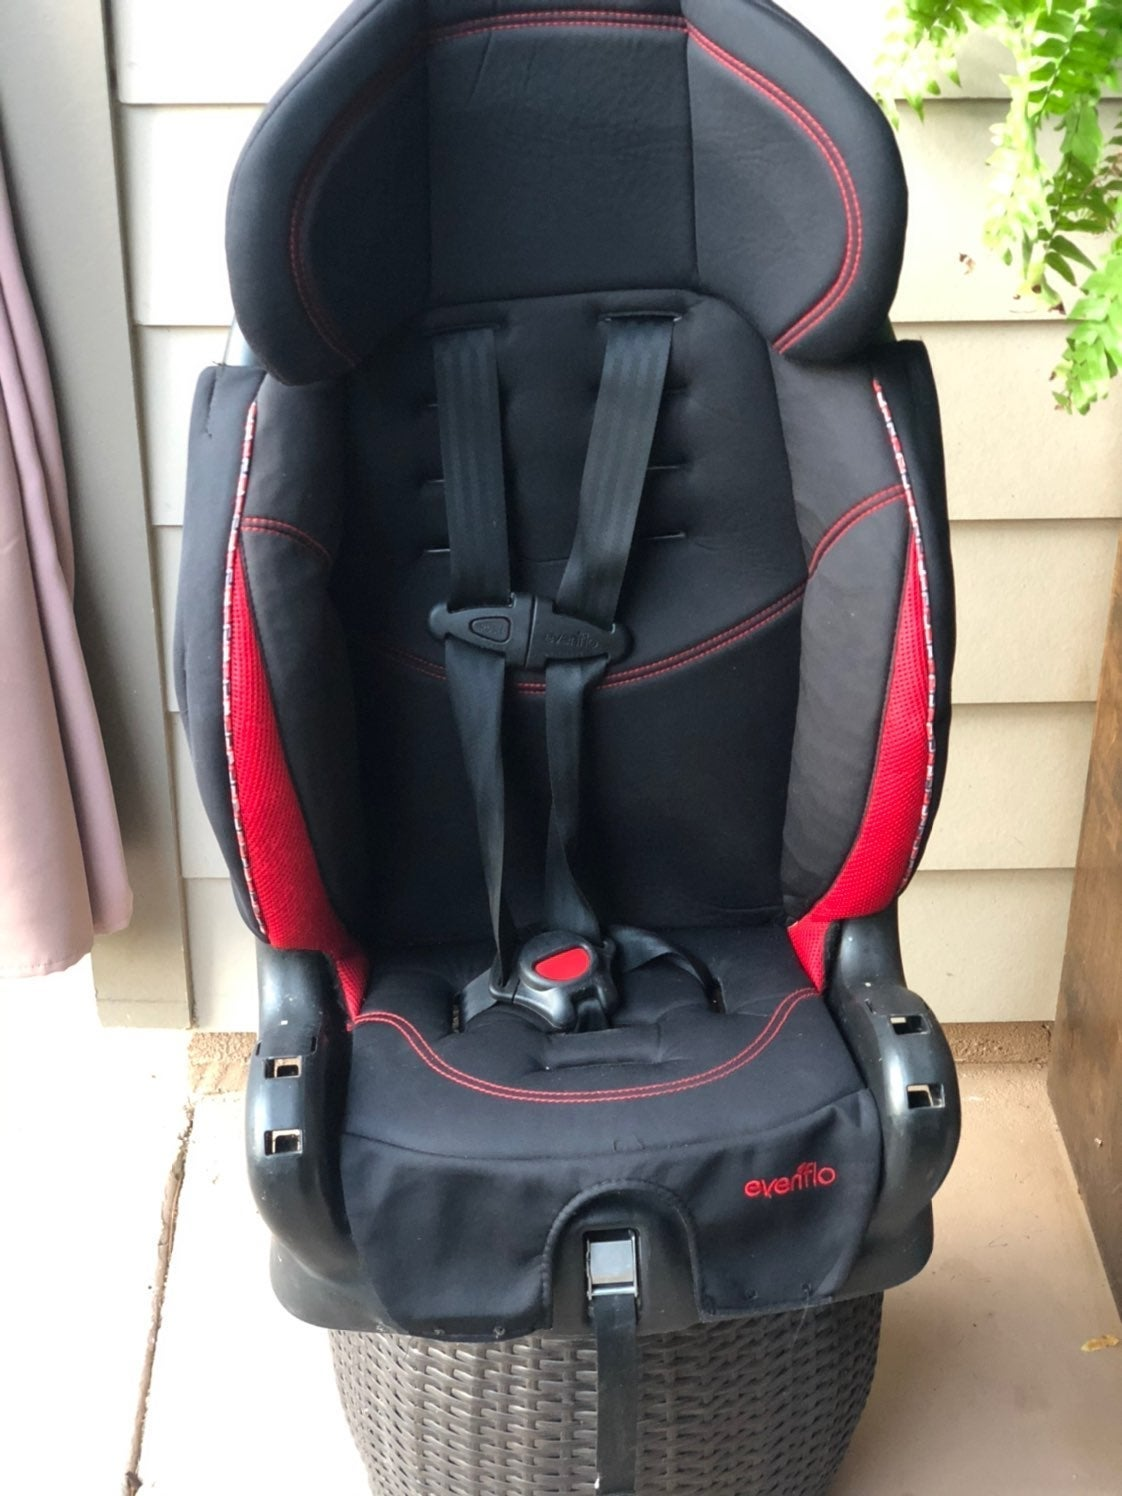 Evenflo Harness Booster Seat